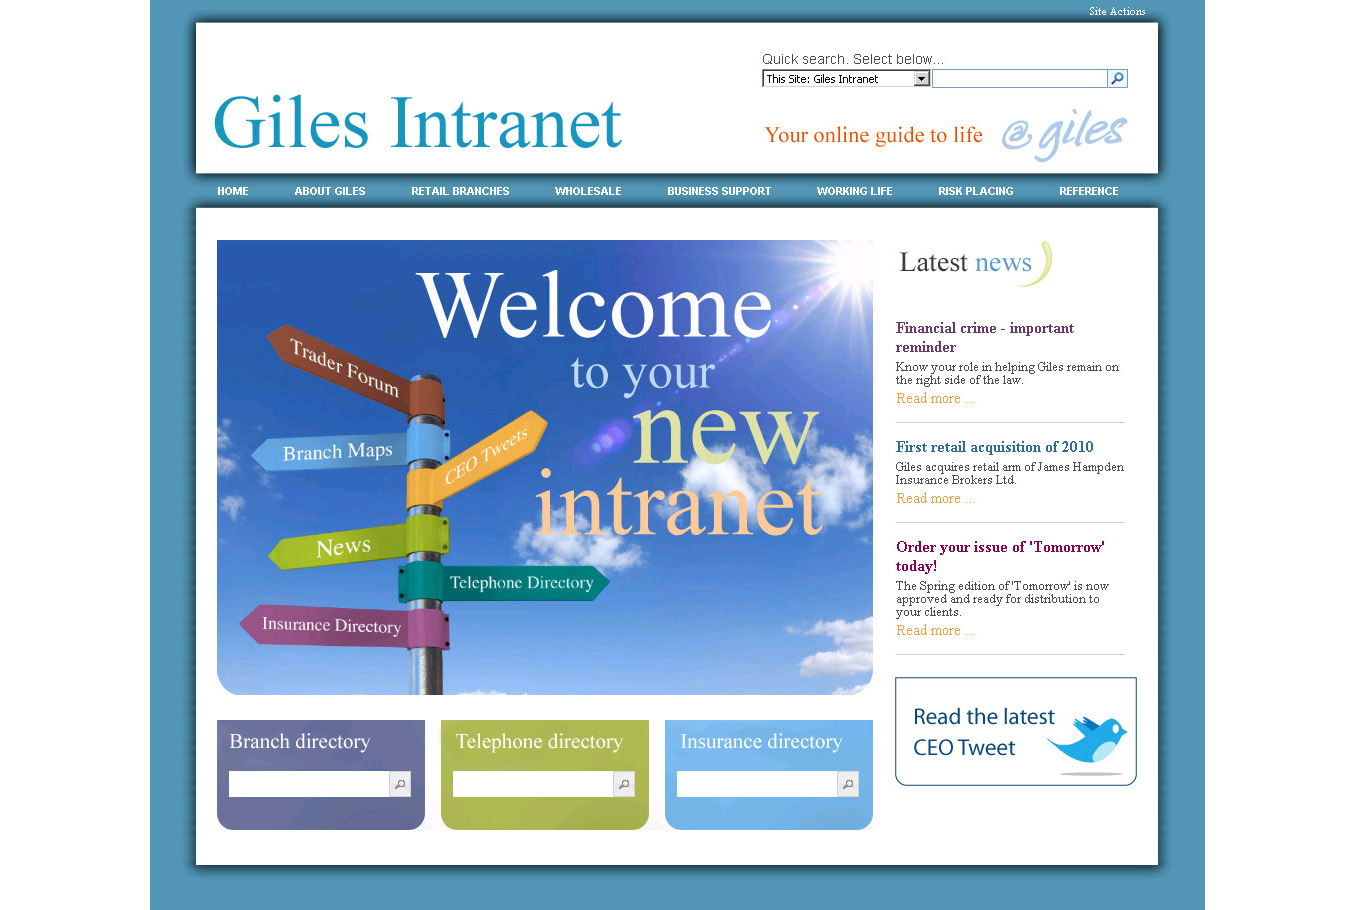 Sharepoint site design ideas - Intranet Giles1 Mainst Medicalintranet_550 Screenshot_sch_intranet Sharepoint Design 03